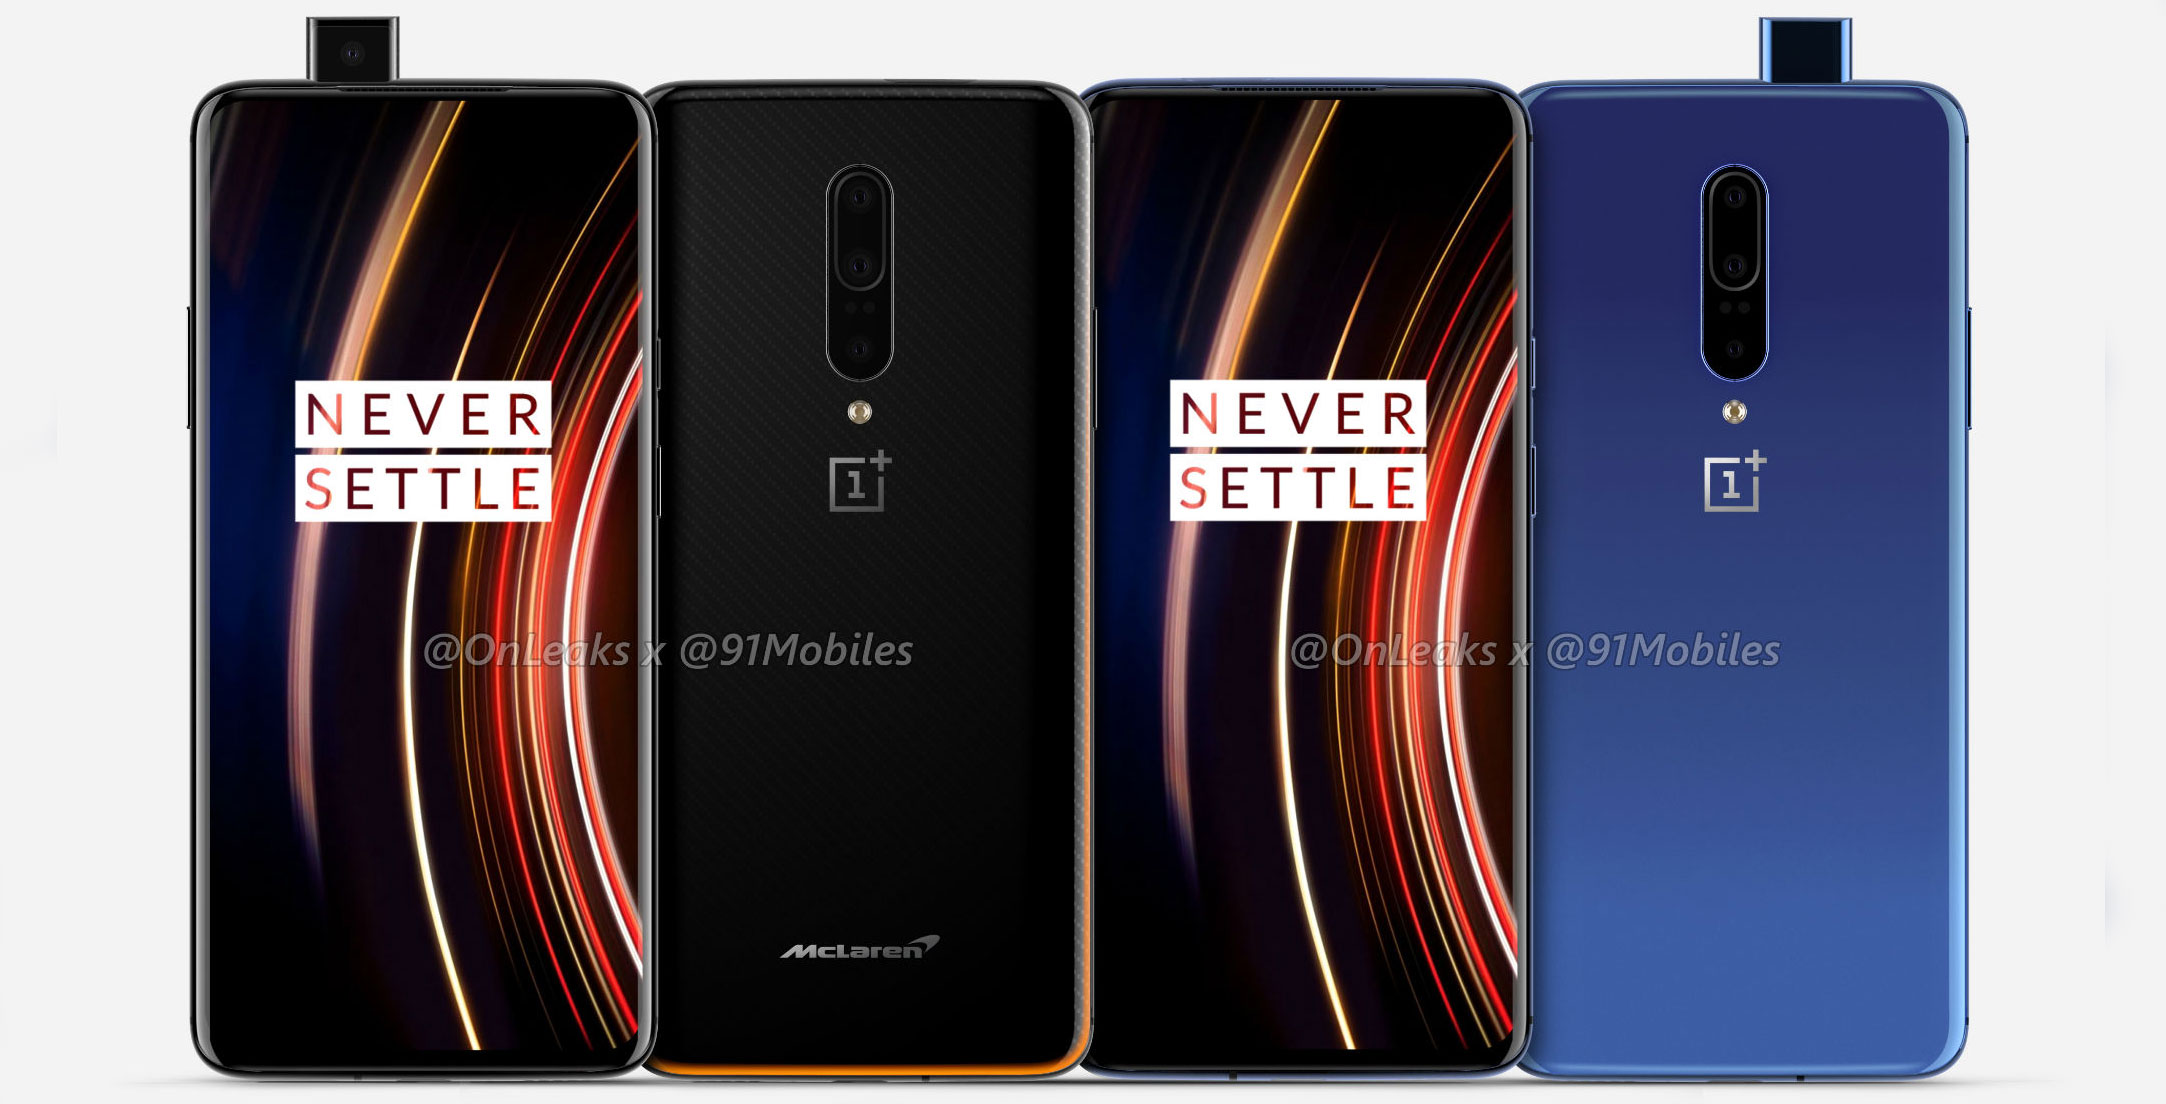 OnePlus 7T Pro specs leak ahead of release, final Android 10